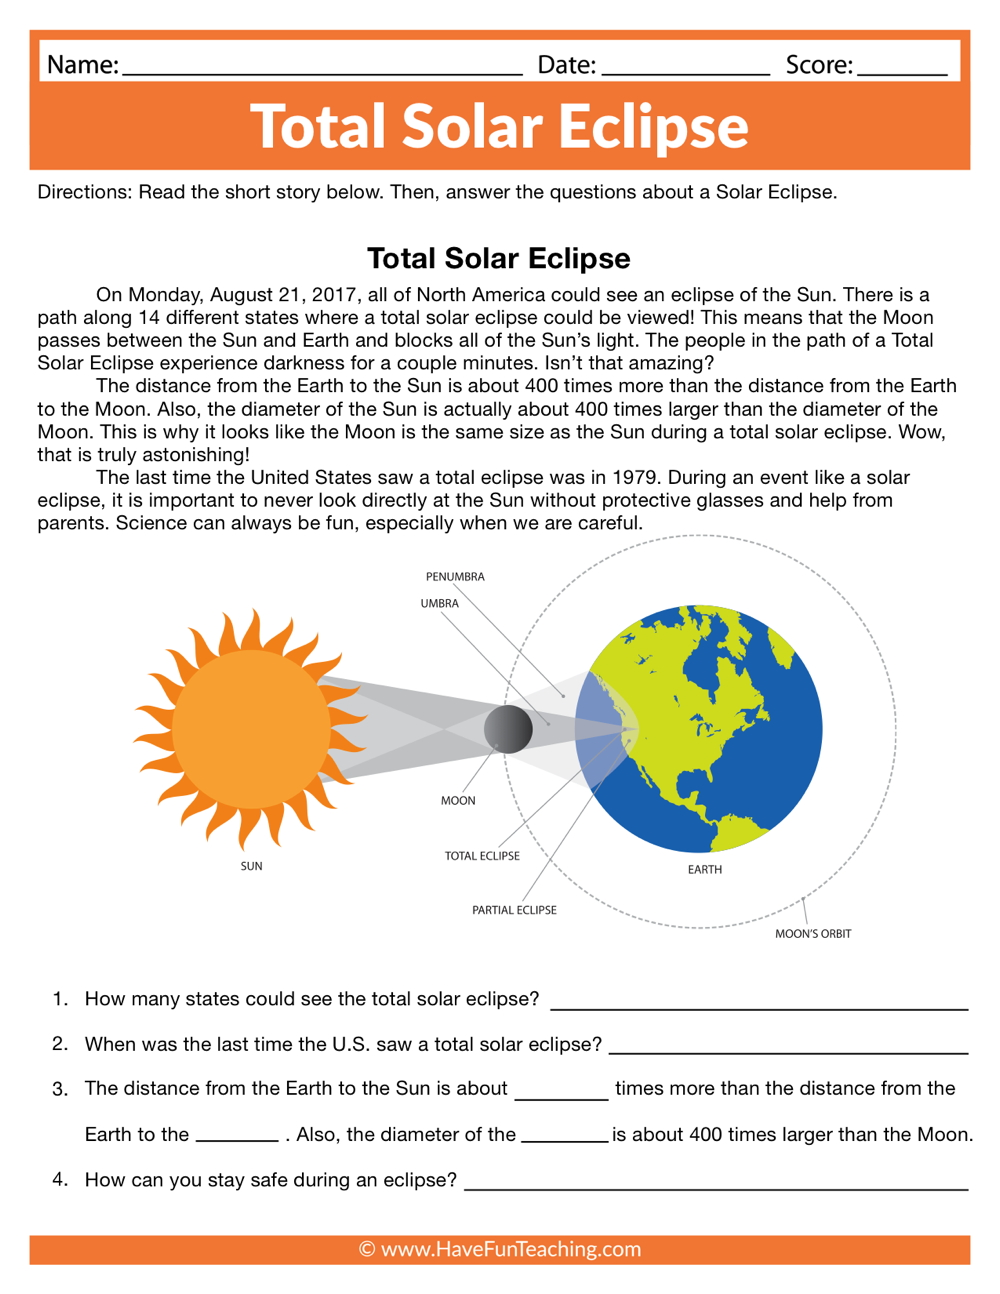 Total Solar Eclipse Worksheet